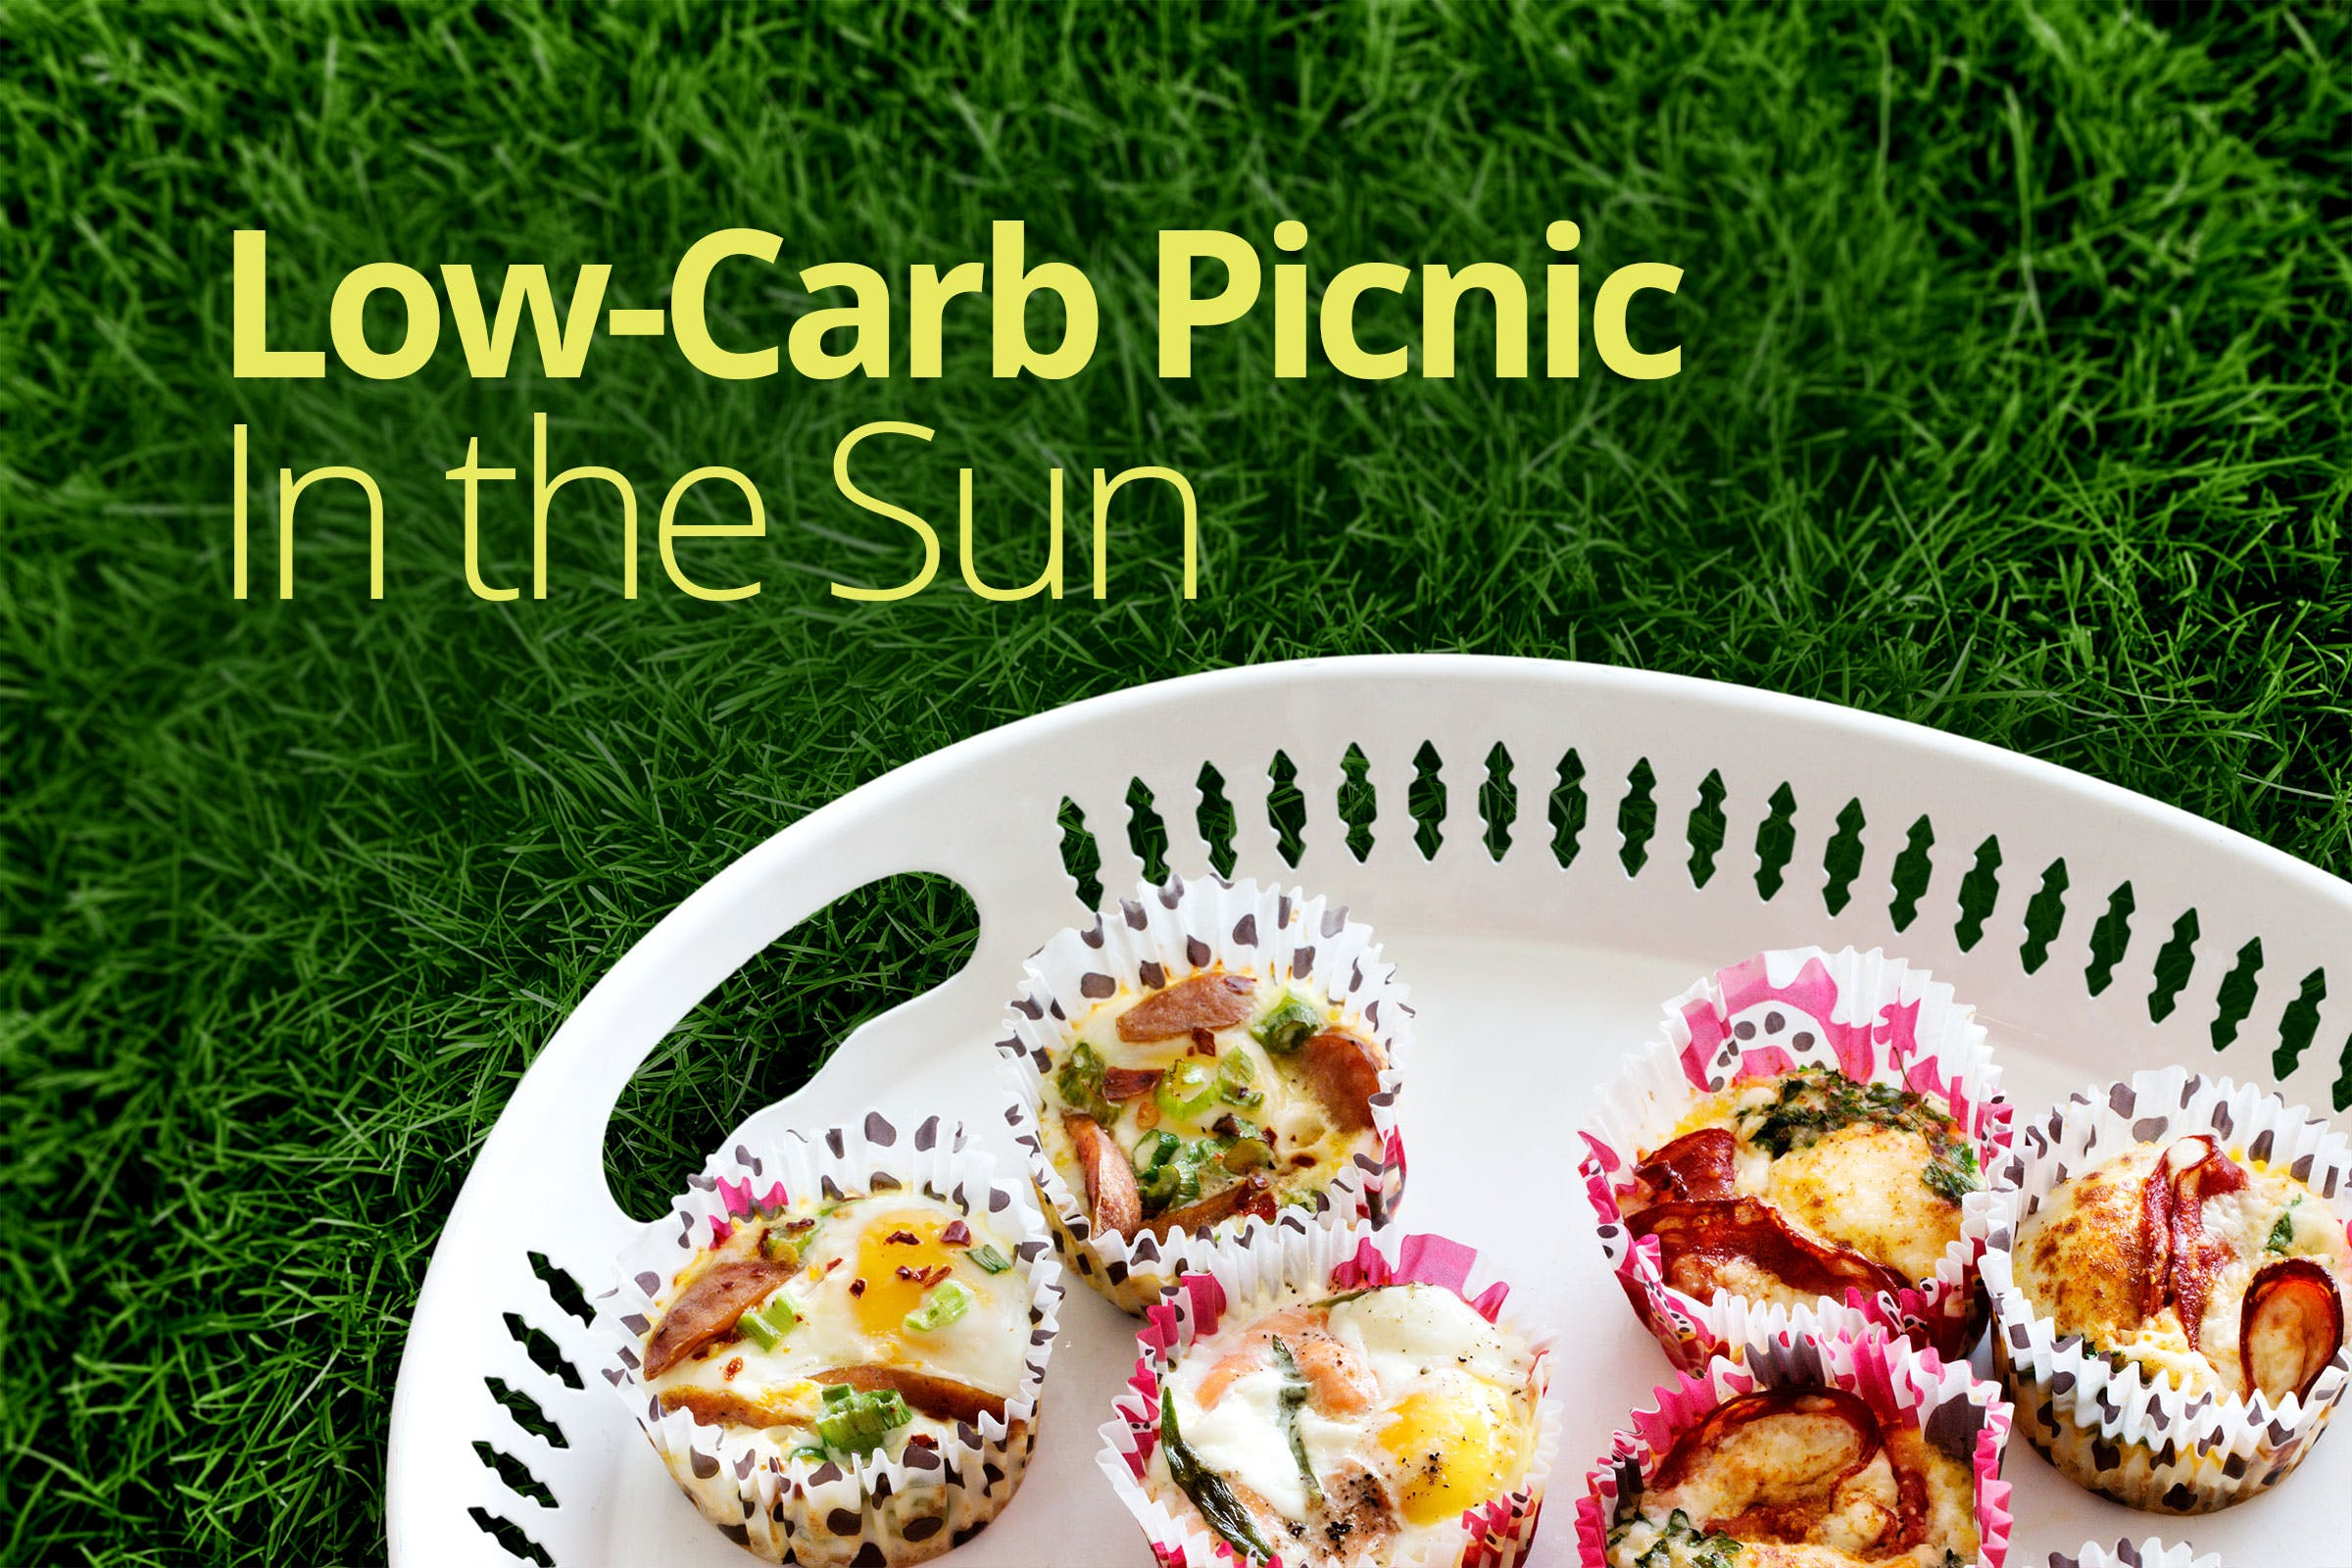 Enjoy Summer with a Low-Carb Picnic